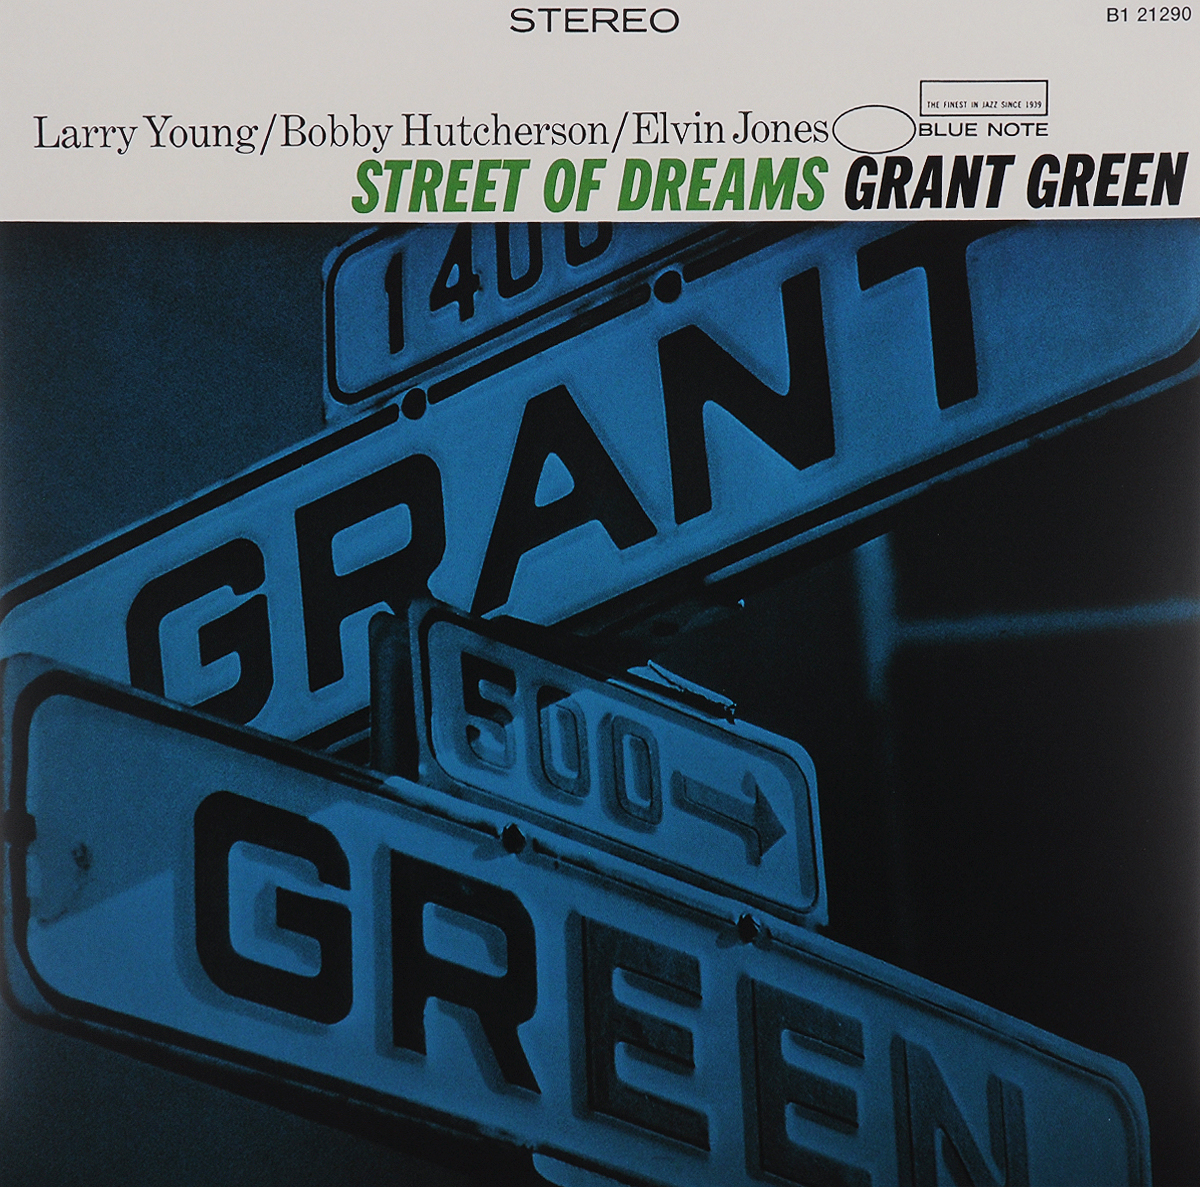 Грант Грин,Бобби Хатчерсон,Ларри Янг,Элвин Джонс Grant Green. Street Of Dreams (LP)